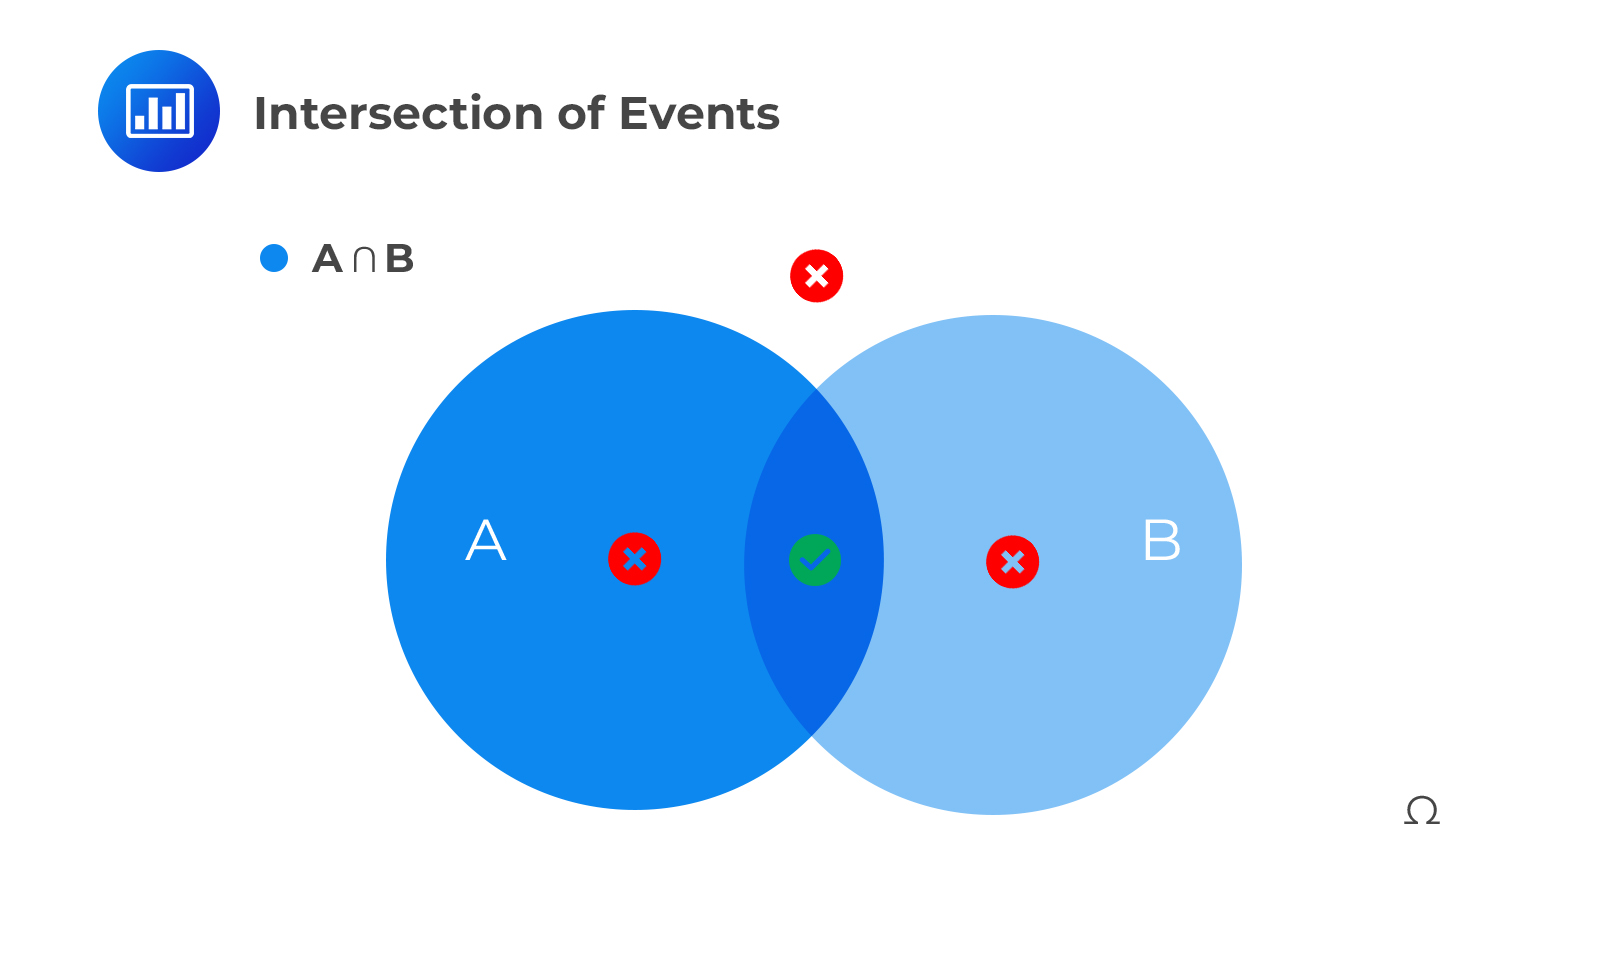 Intersection of Events